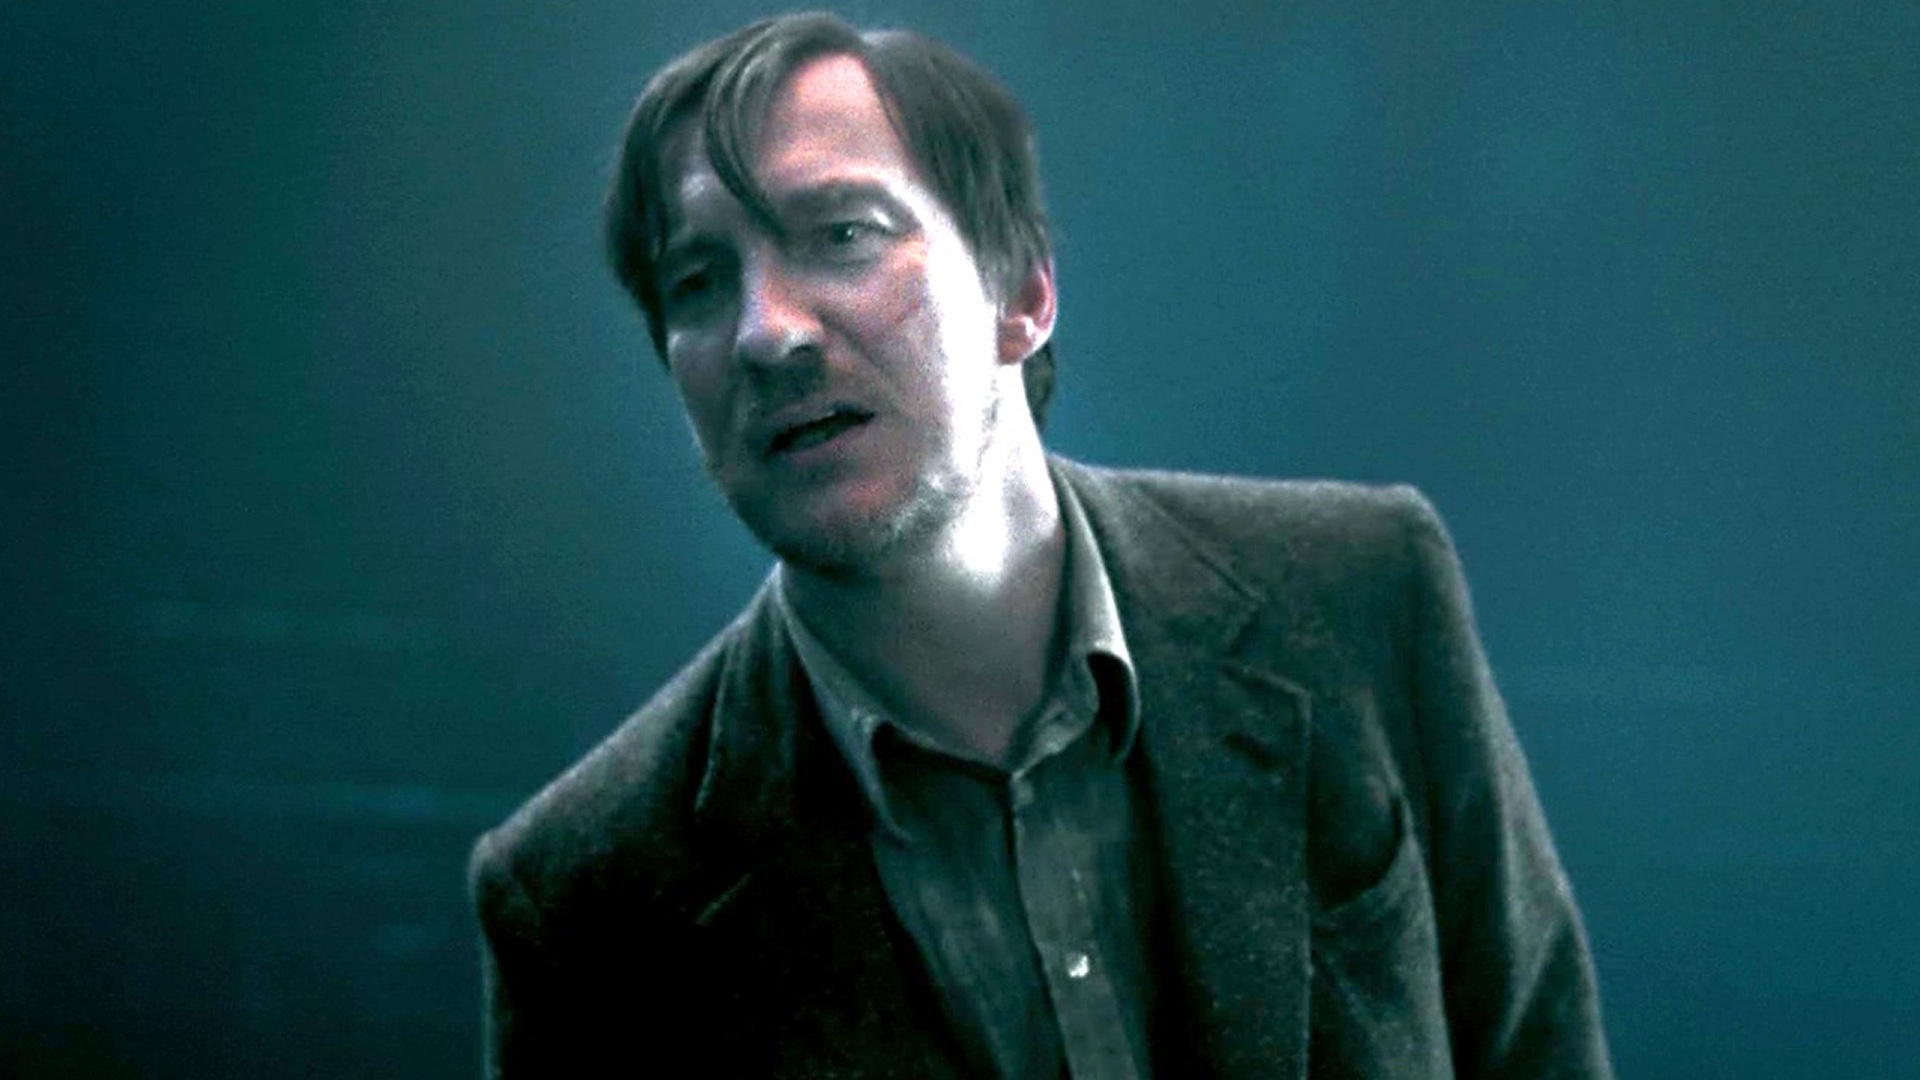 Geek Wallpaper Hd Harry Potter Actor David Thewlis Joins Fargo Season 3 With